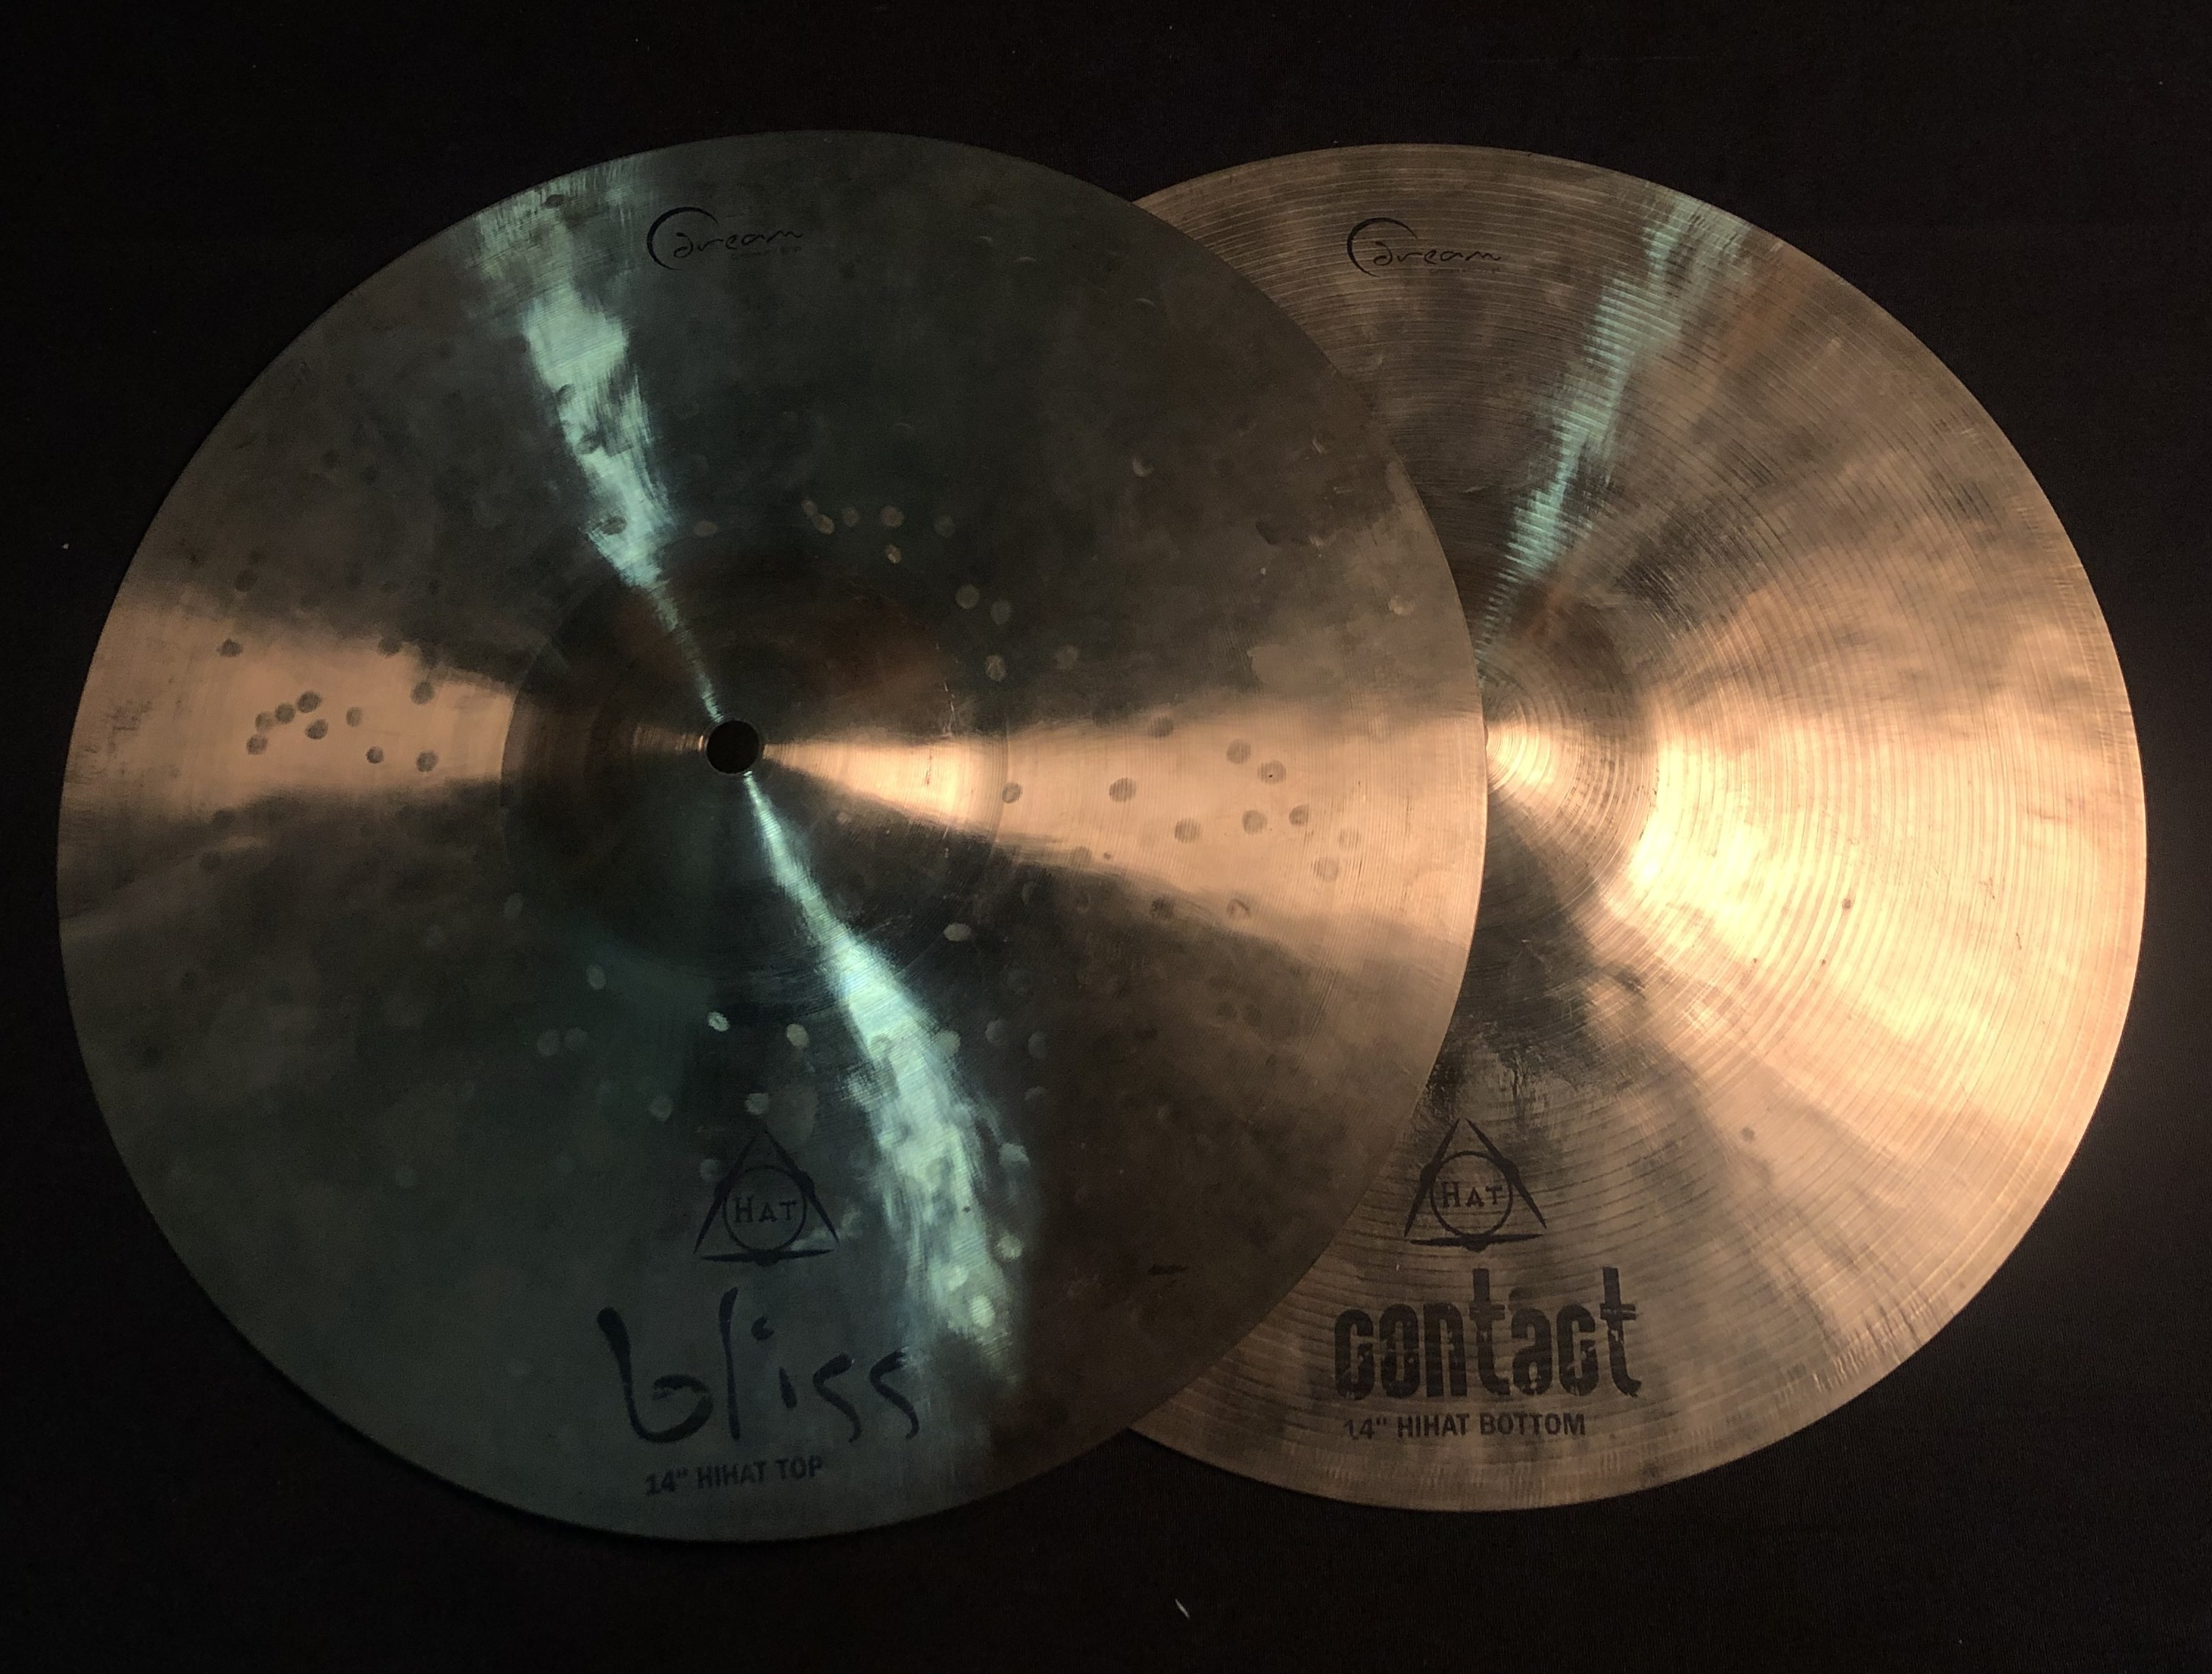 DREAM - Bliss (Top) and Contact (Bottom) Hi-Hat Pair 14